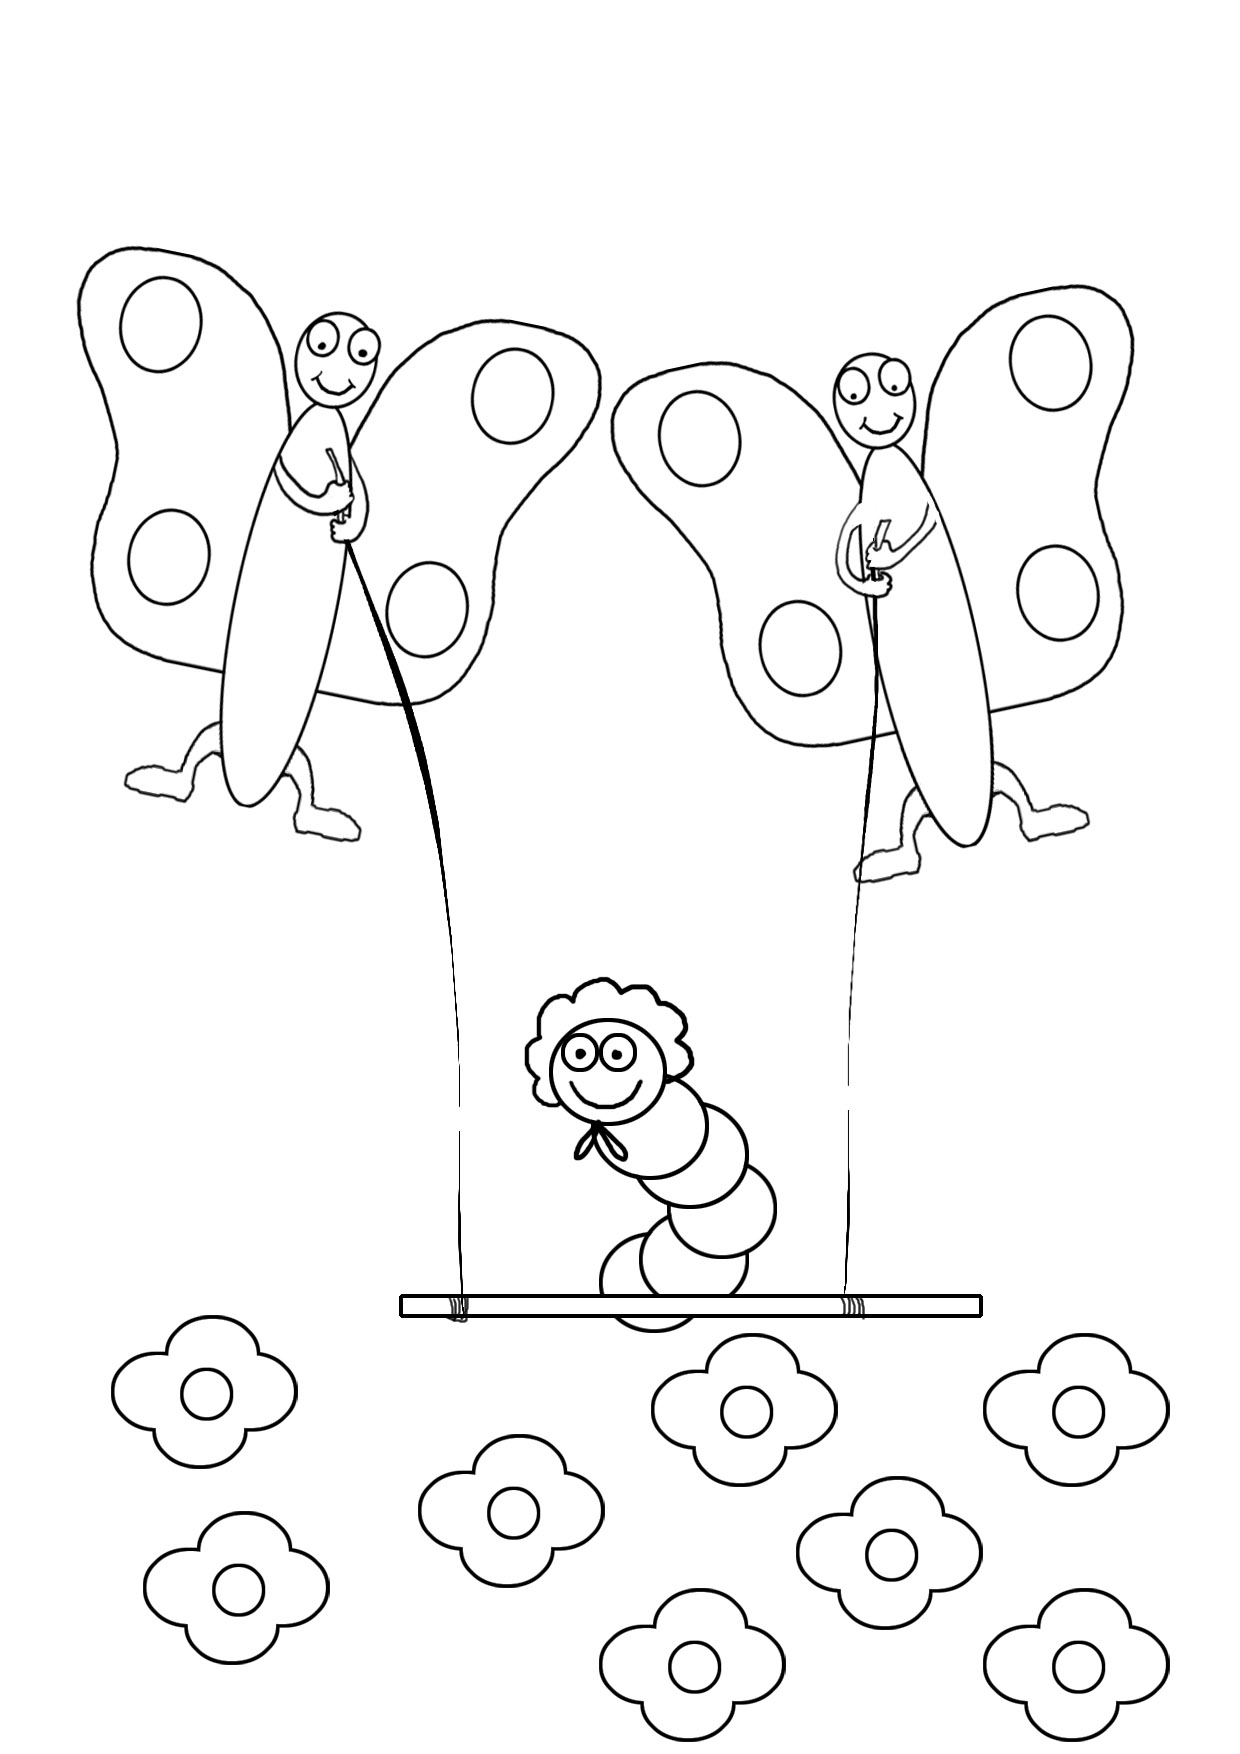 kids coloring page with butterflies